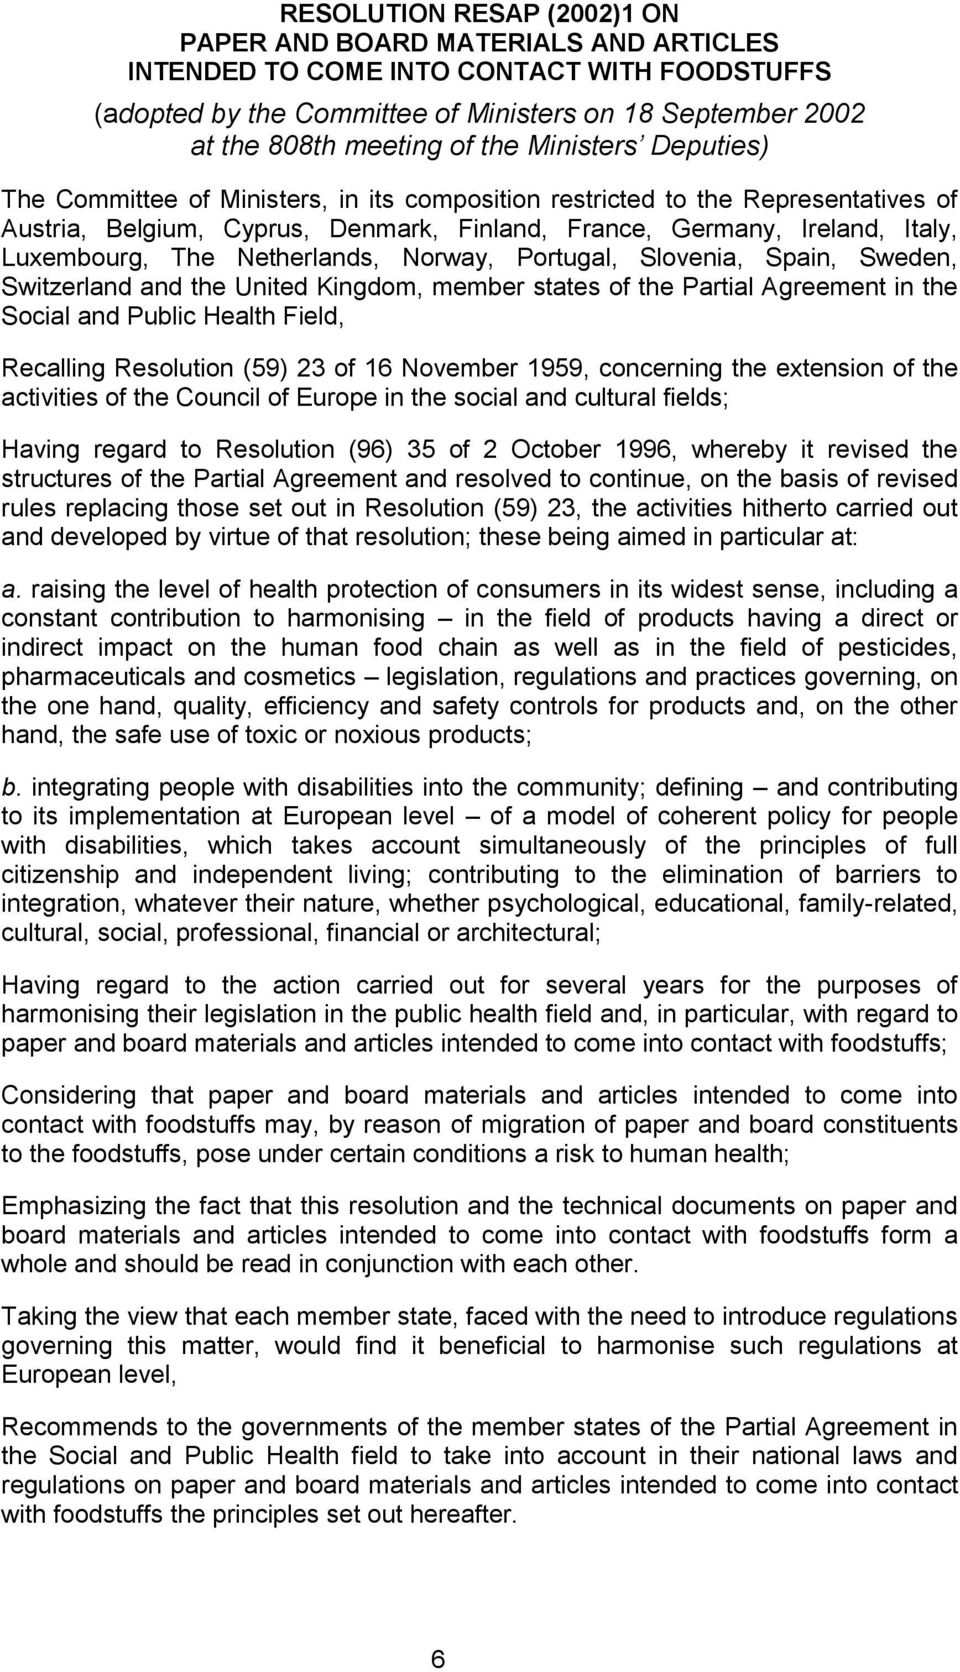 The Netherlands, Norway, Portugal, Slovenia, Spain, Sweden, Switzerland and the United Kingdom, member states of the Partial Agreement in the Social and Public Health Field, Recalling Resolution (59)